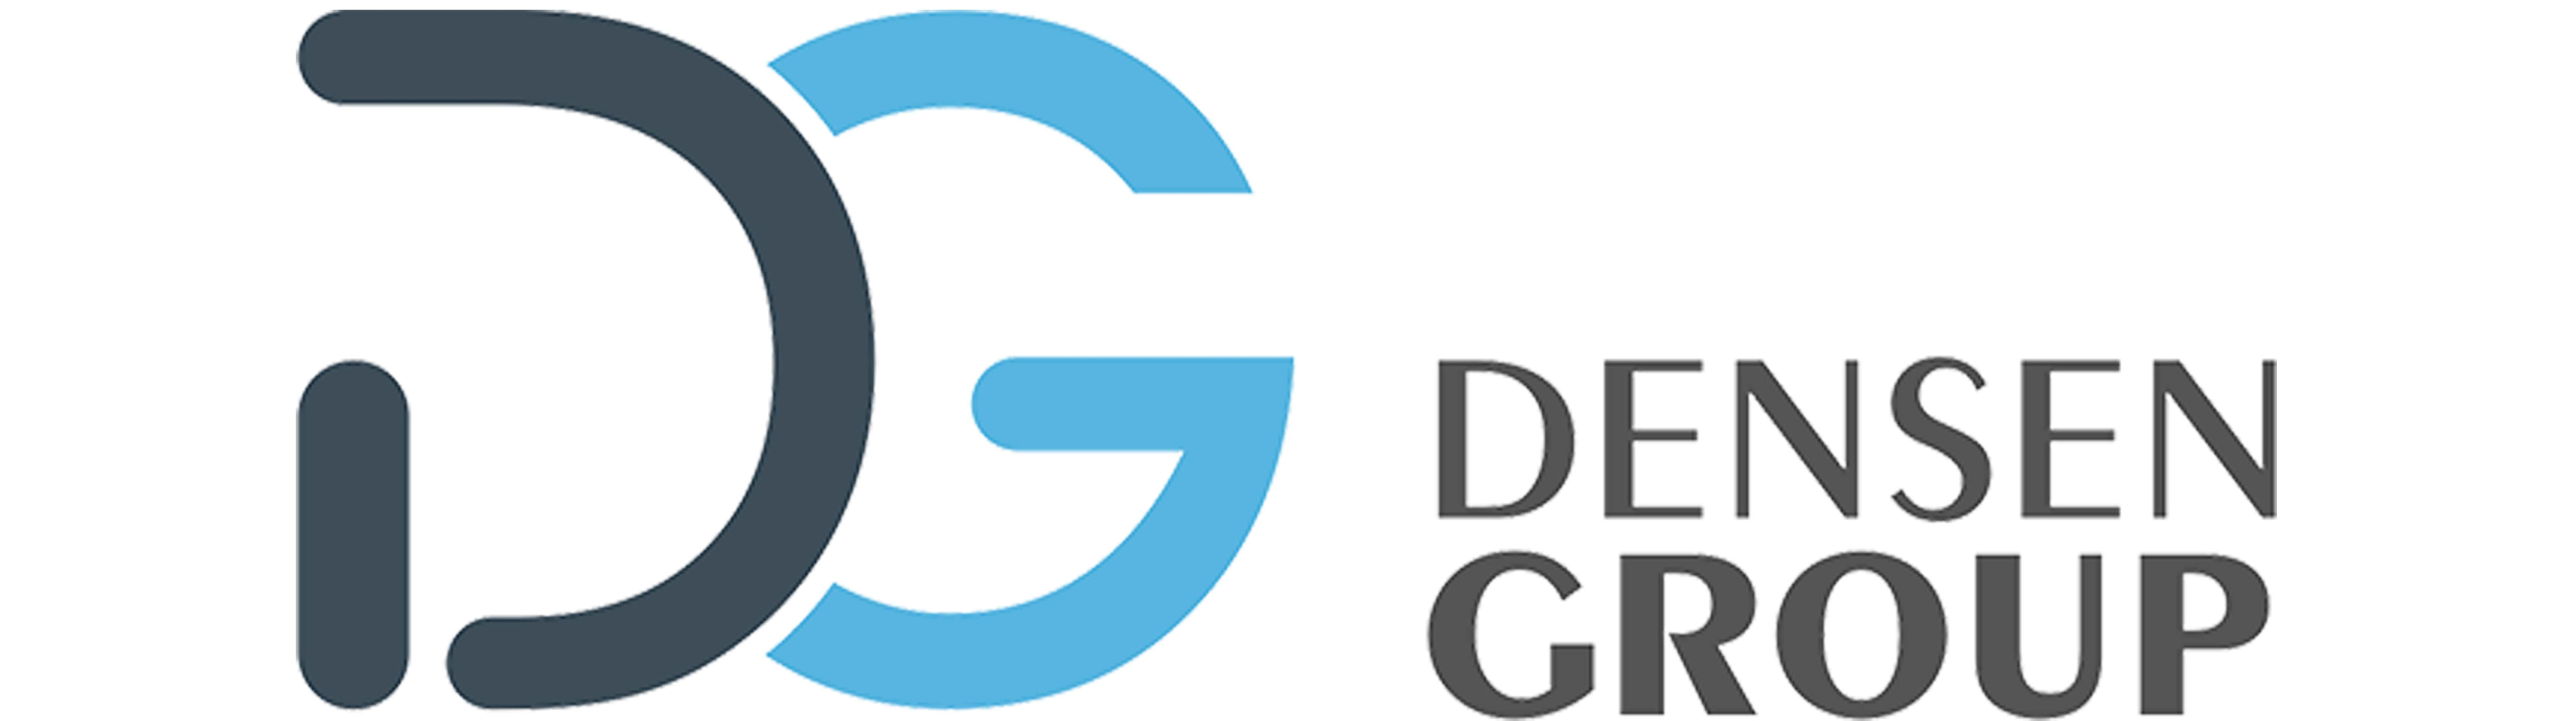 Densen Group logo-new